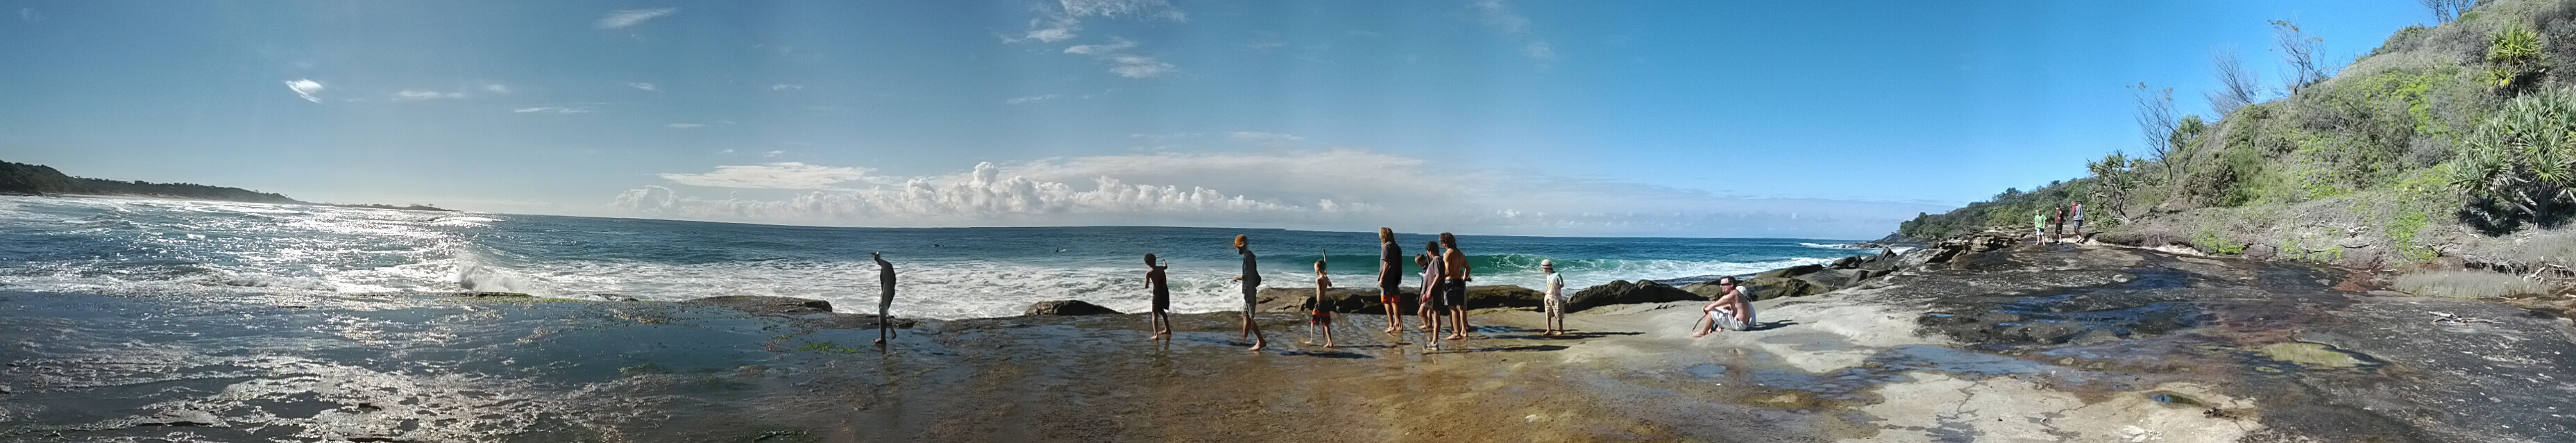 Byron Bay Uncle Project Beach Pano